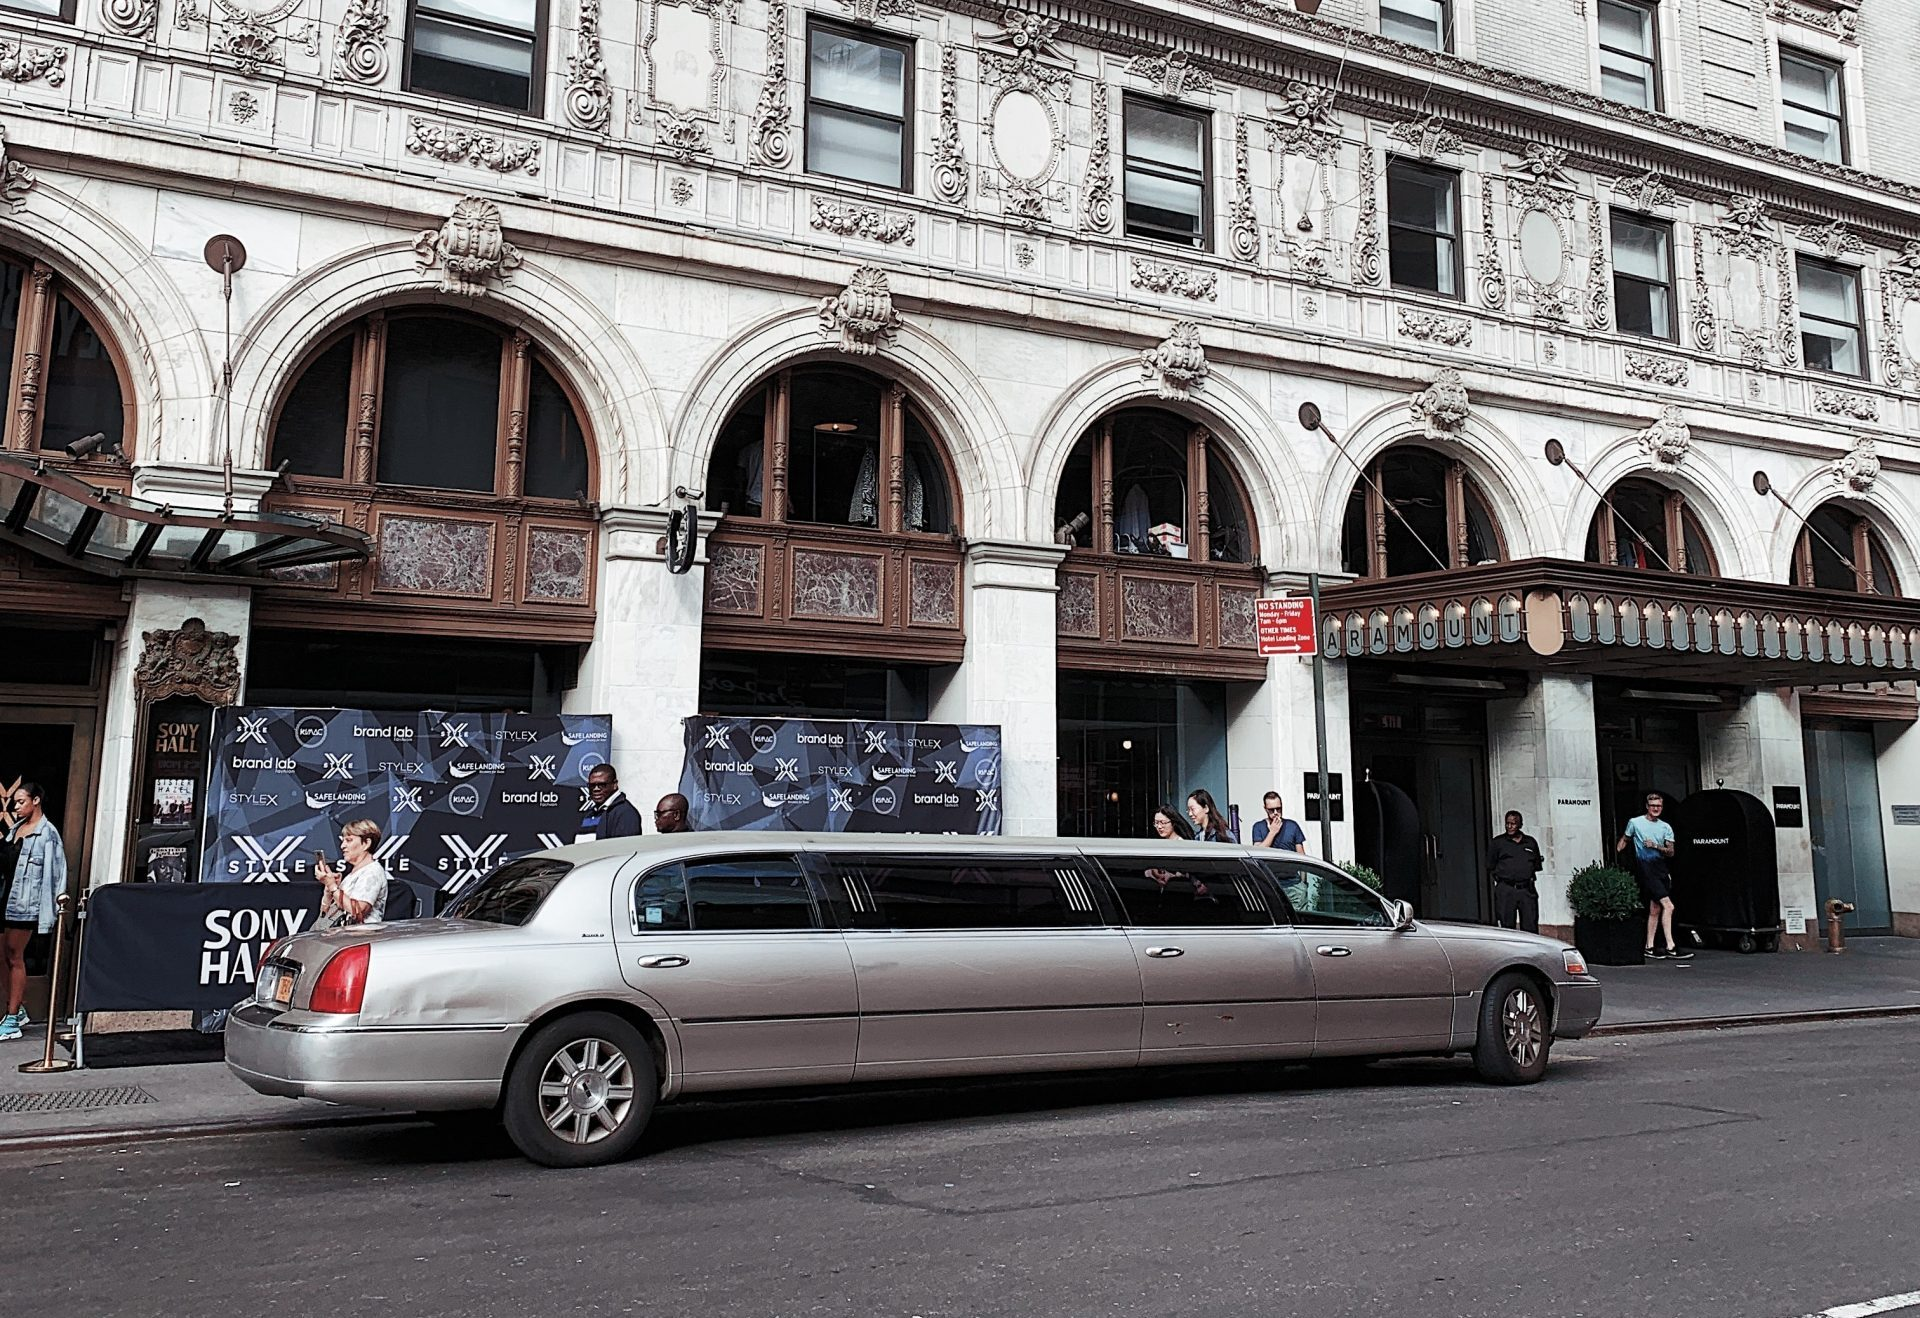 image of a limo in front of a building